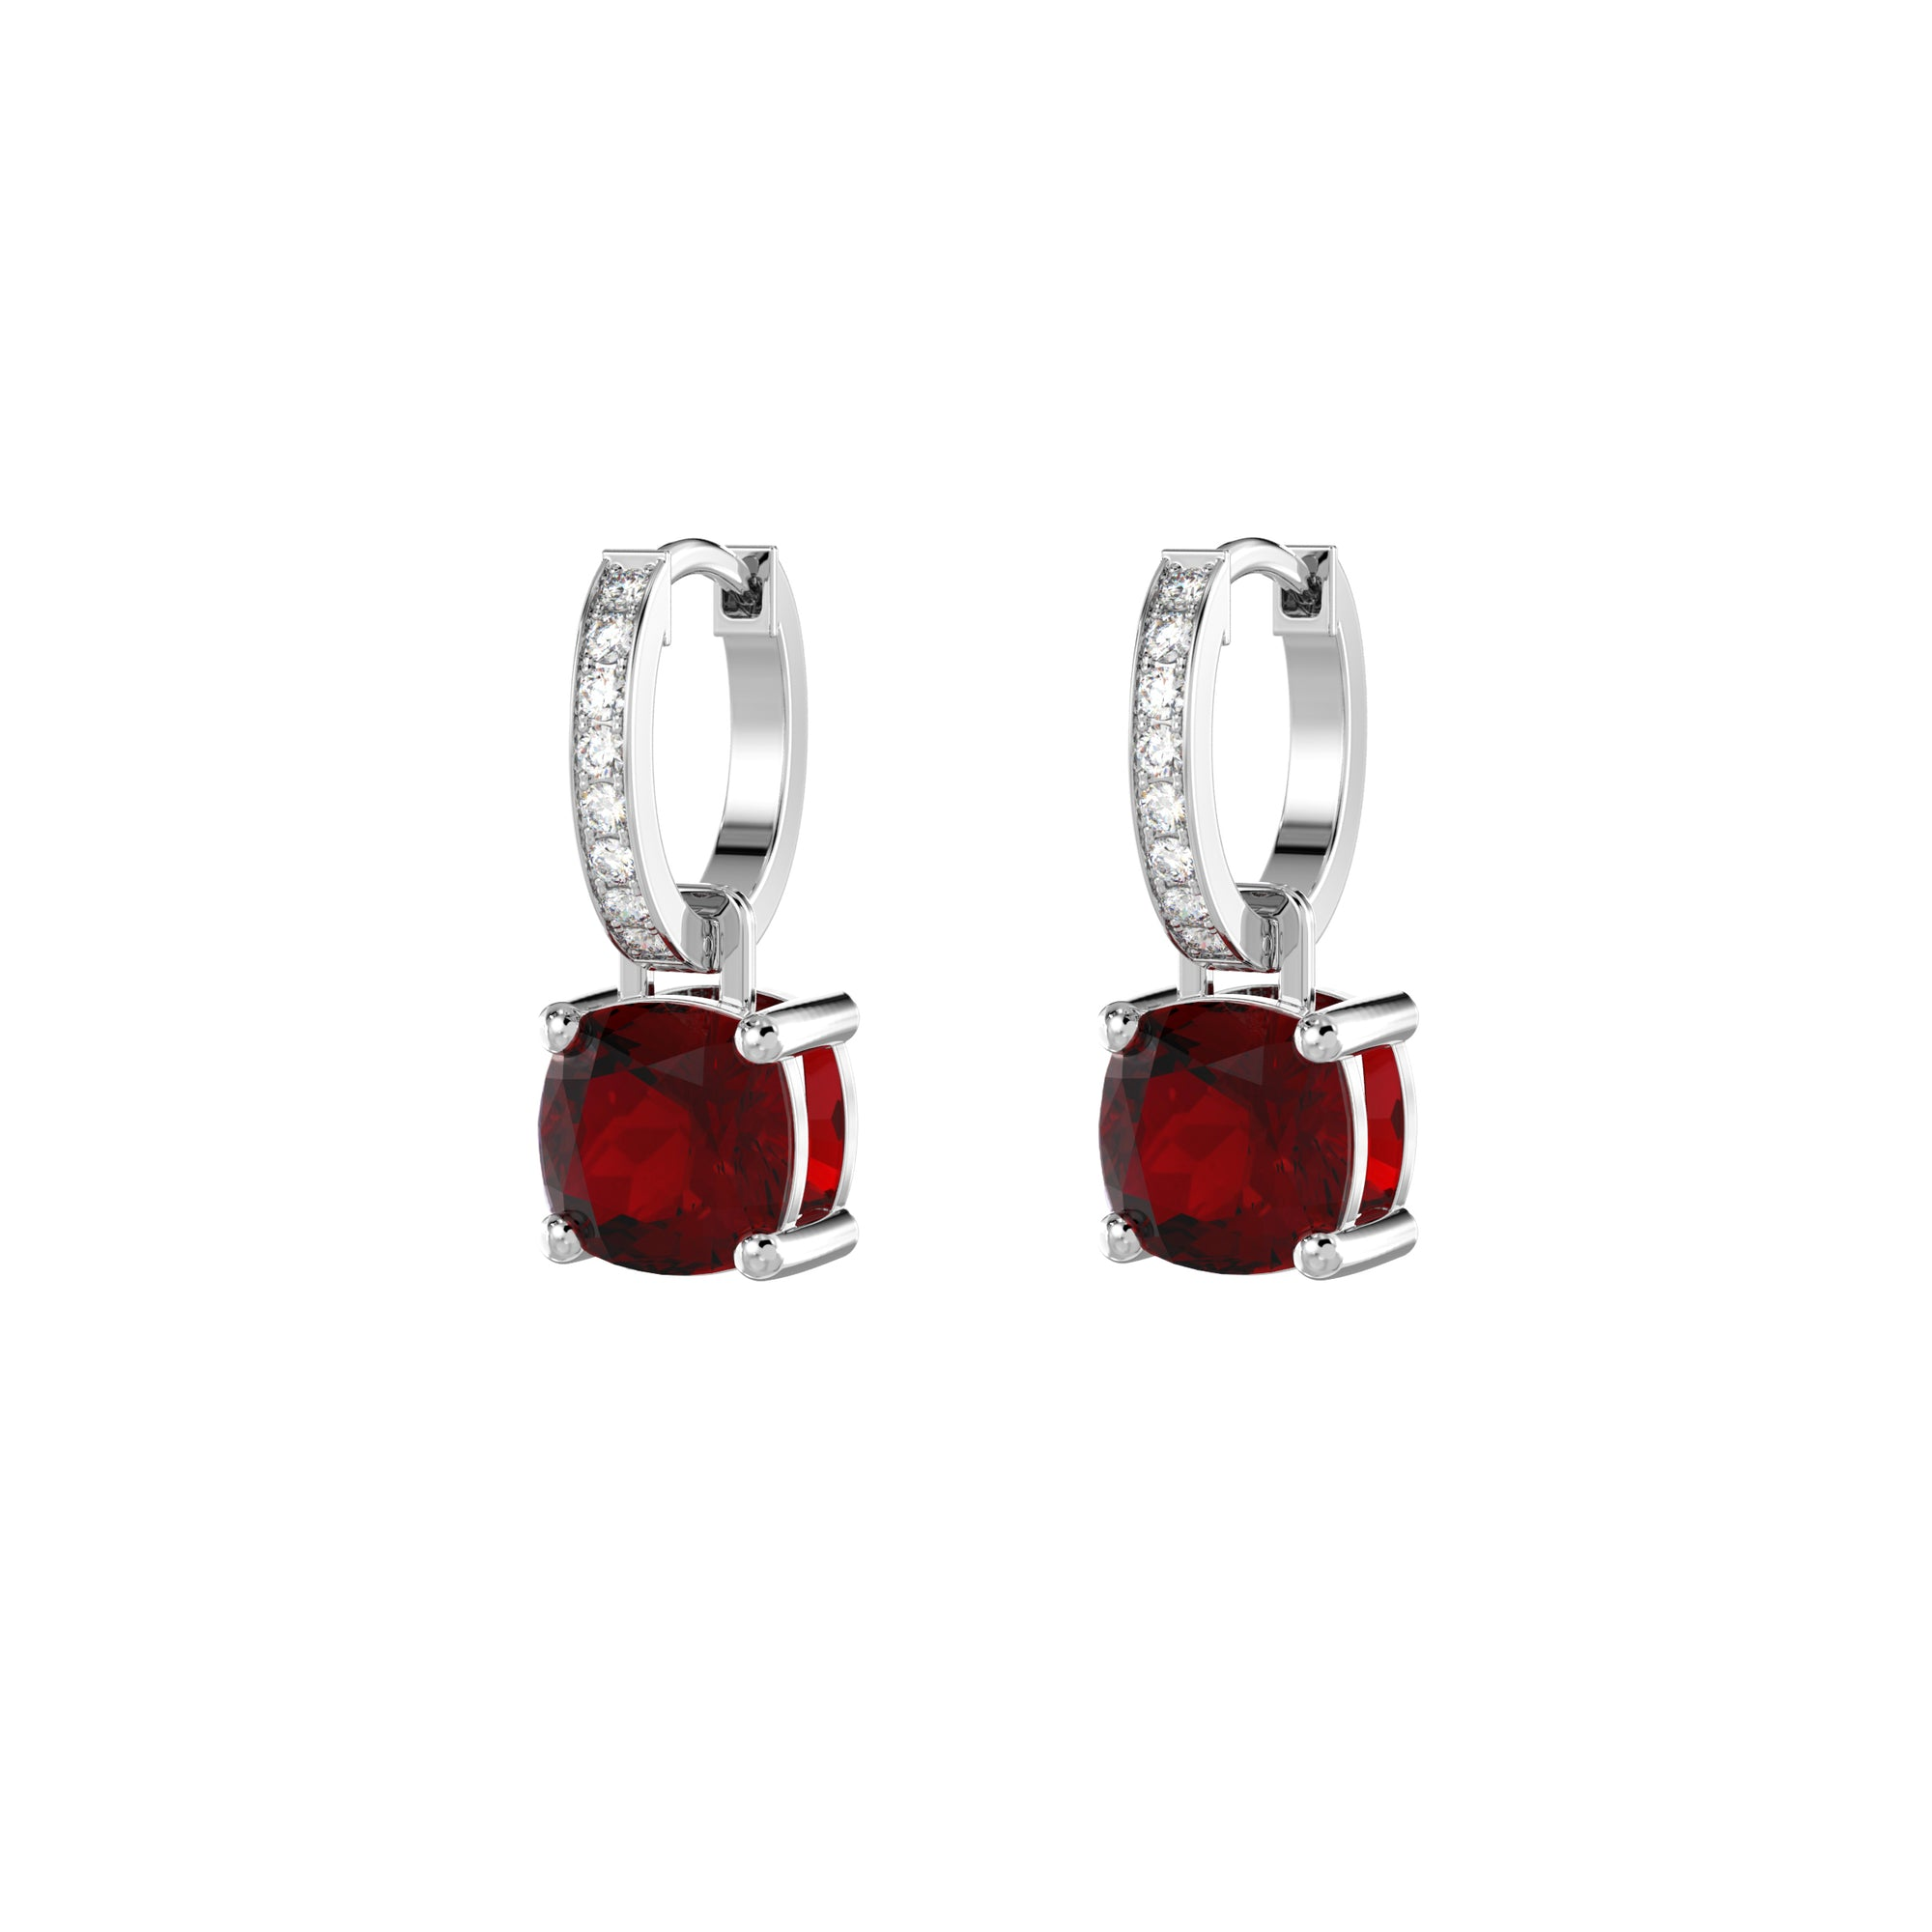 925 Silver Luxe Series Earrings Charms - Wylie (Garnet)